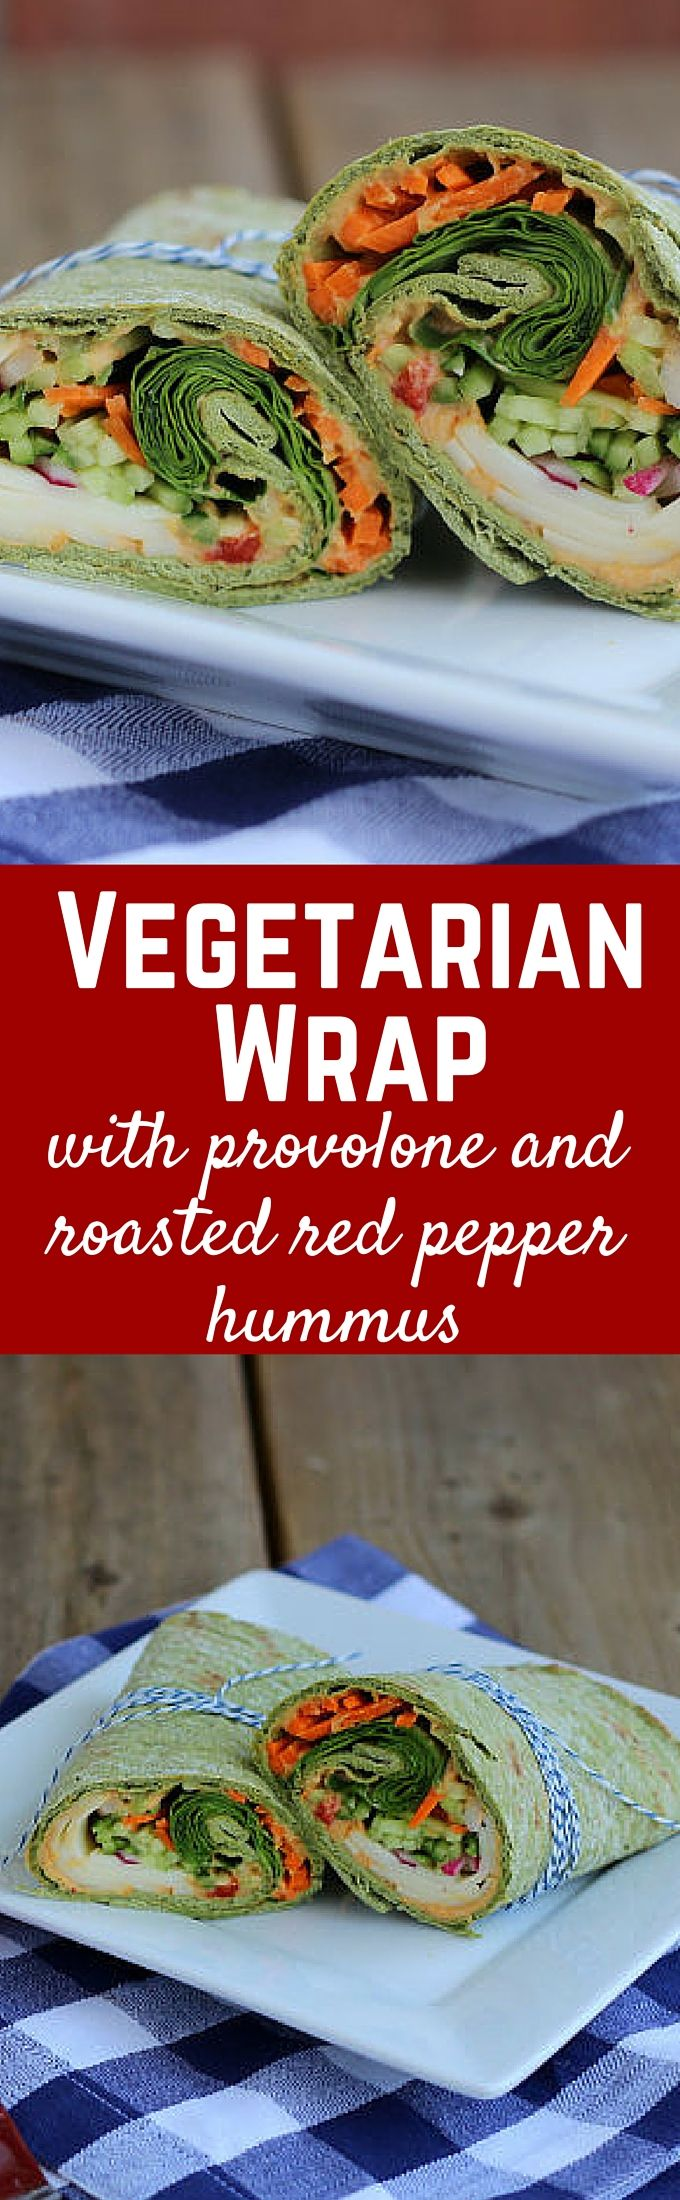 Vegetarian Wrap with Provolone and Roasted Red Pepper Hummus - get the easy lunch recipe on RachelCooks.com!